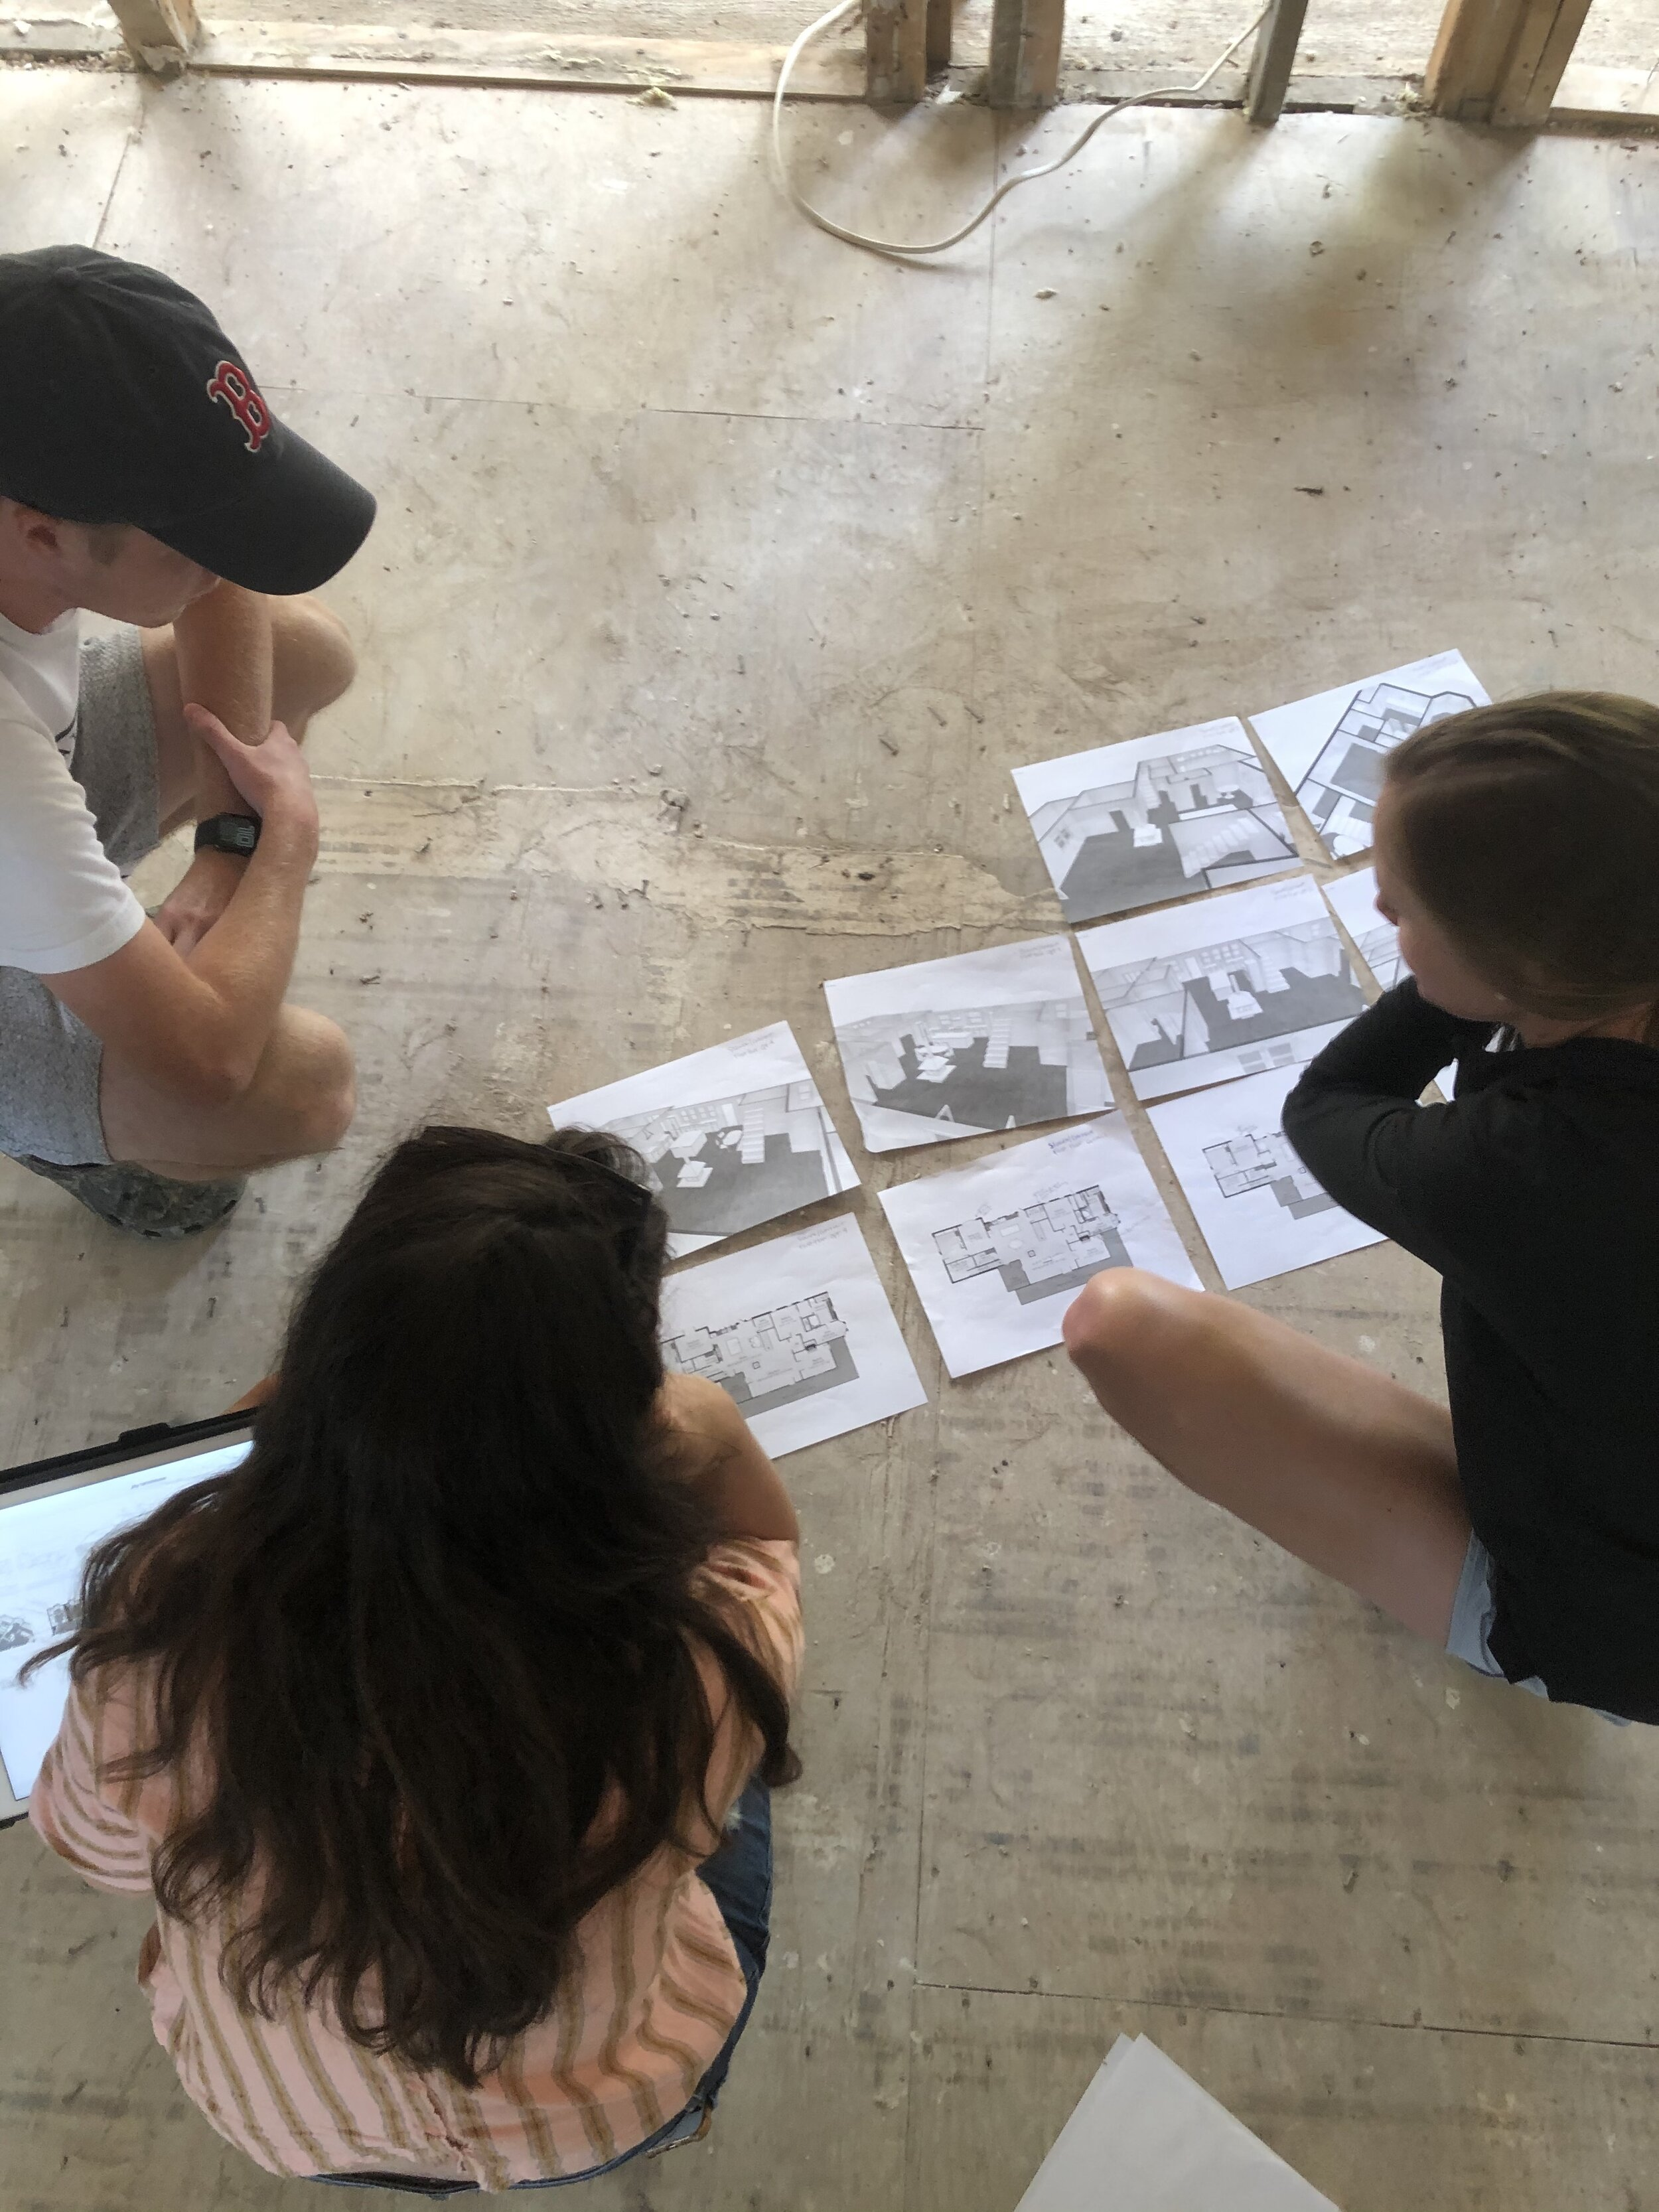 One of our early planning meetings—thinking through new kitchen layouts!